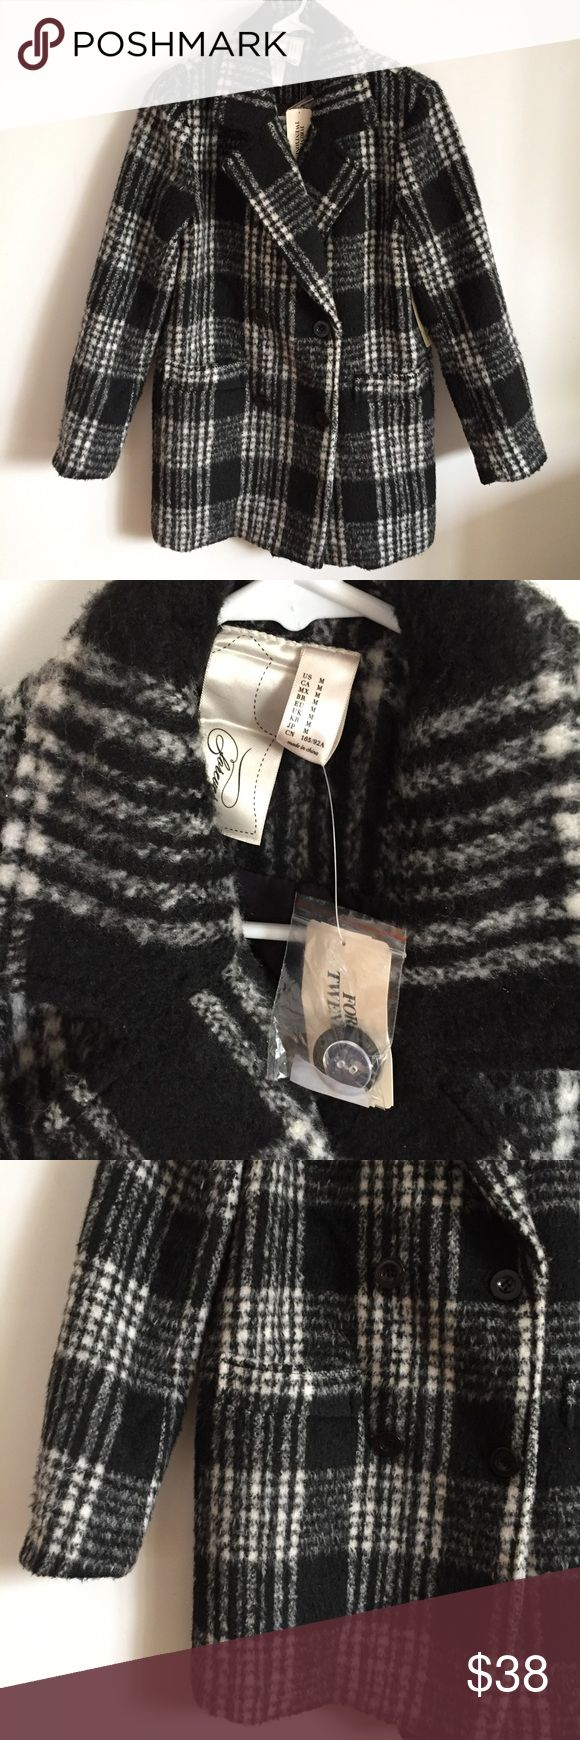 NWT Black & White Plaid Winter Coat Forever 21 A gorgeous warm winter coat from Forever 21, brand new with tags. Black and white checkered plaid design. Button up. Retails $62 Forever 21 Jackets & Coats Pea Coats